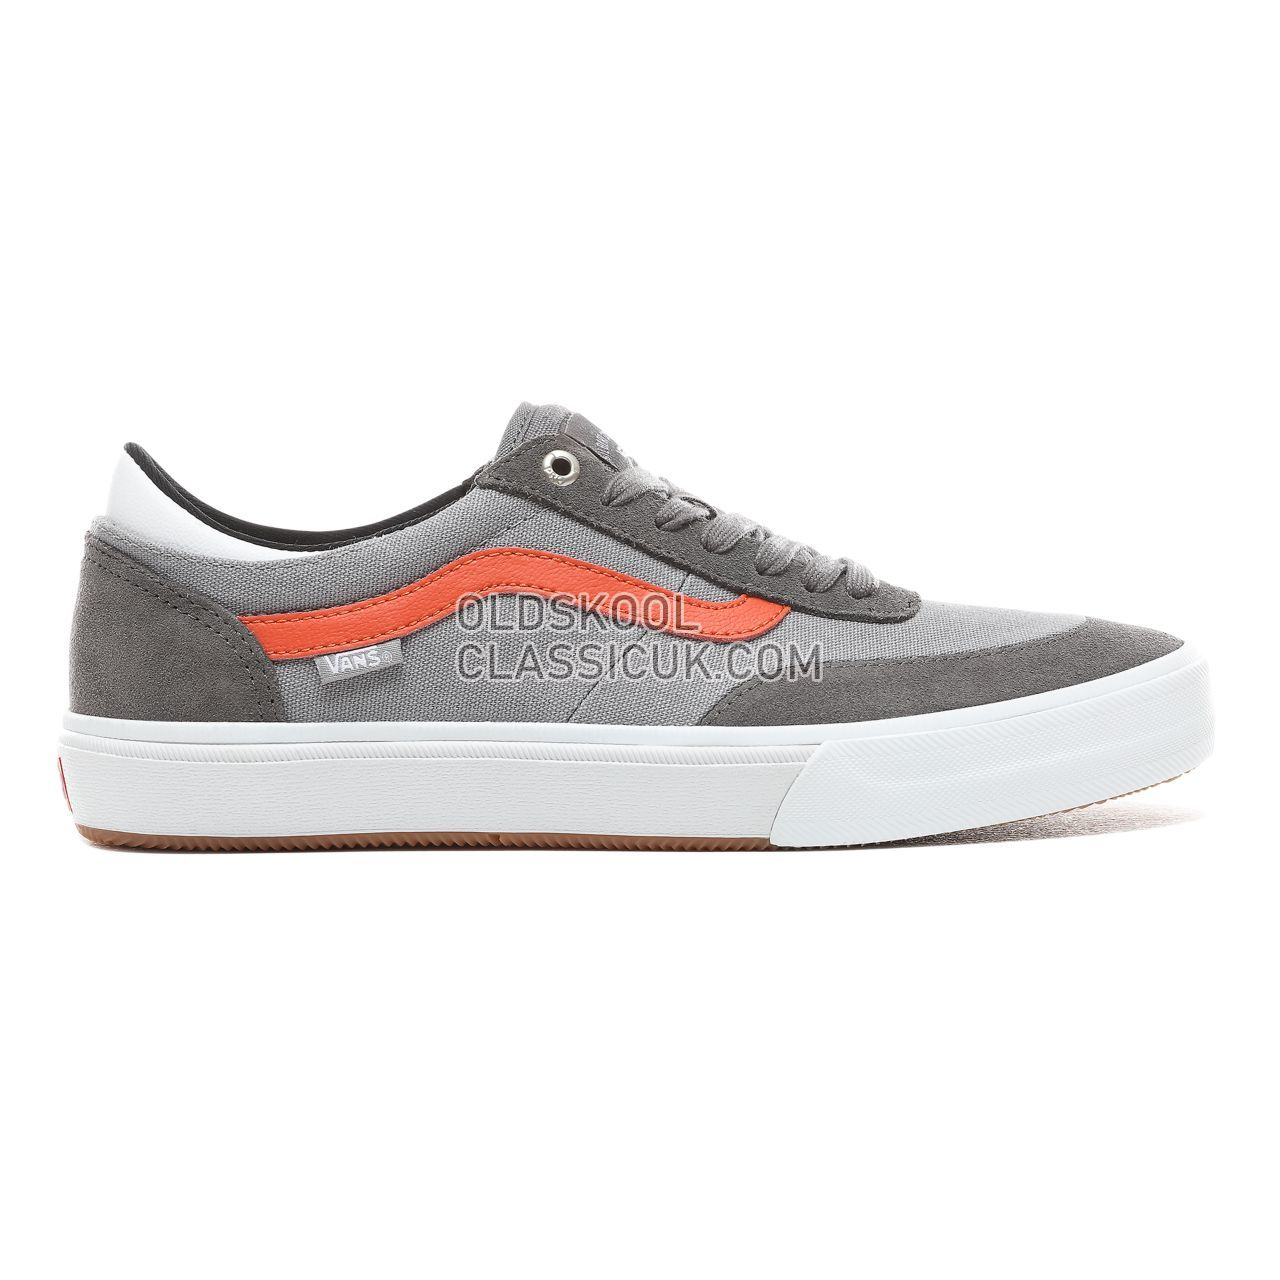 Vans Glibert Crockett 2 Pro Sneakers Mens Pewter/Frost Gray VN0A38COVFJ Shoes